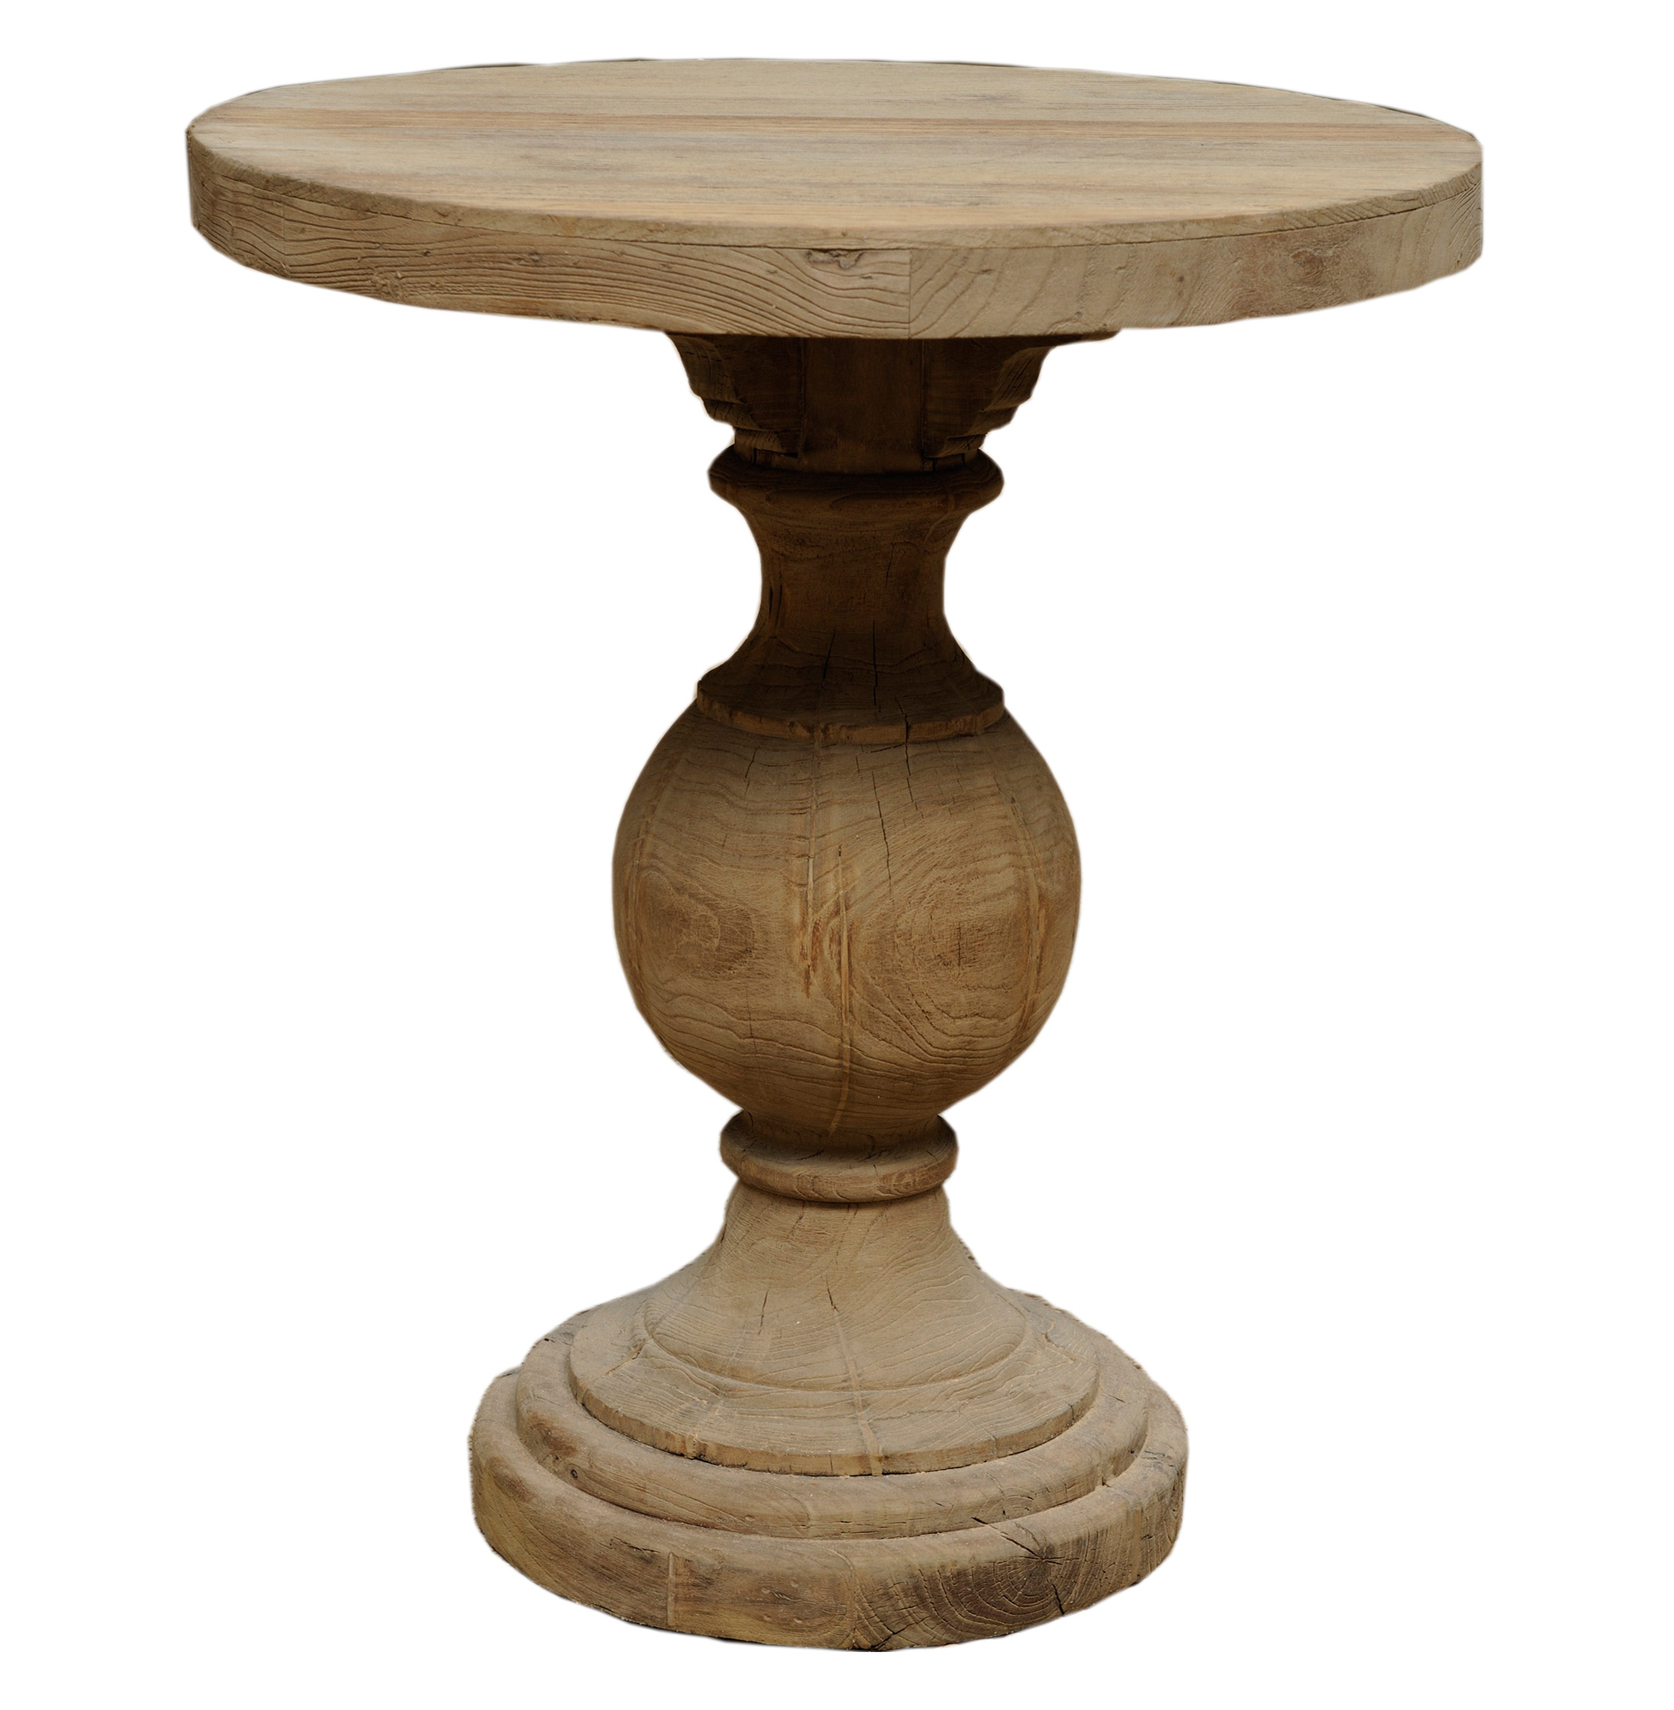 Traditional Wooden Small Round Table With Pedestal